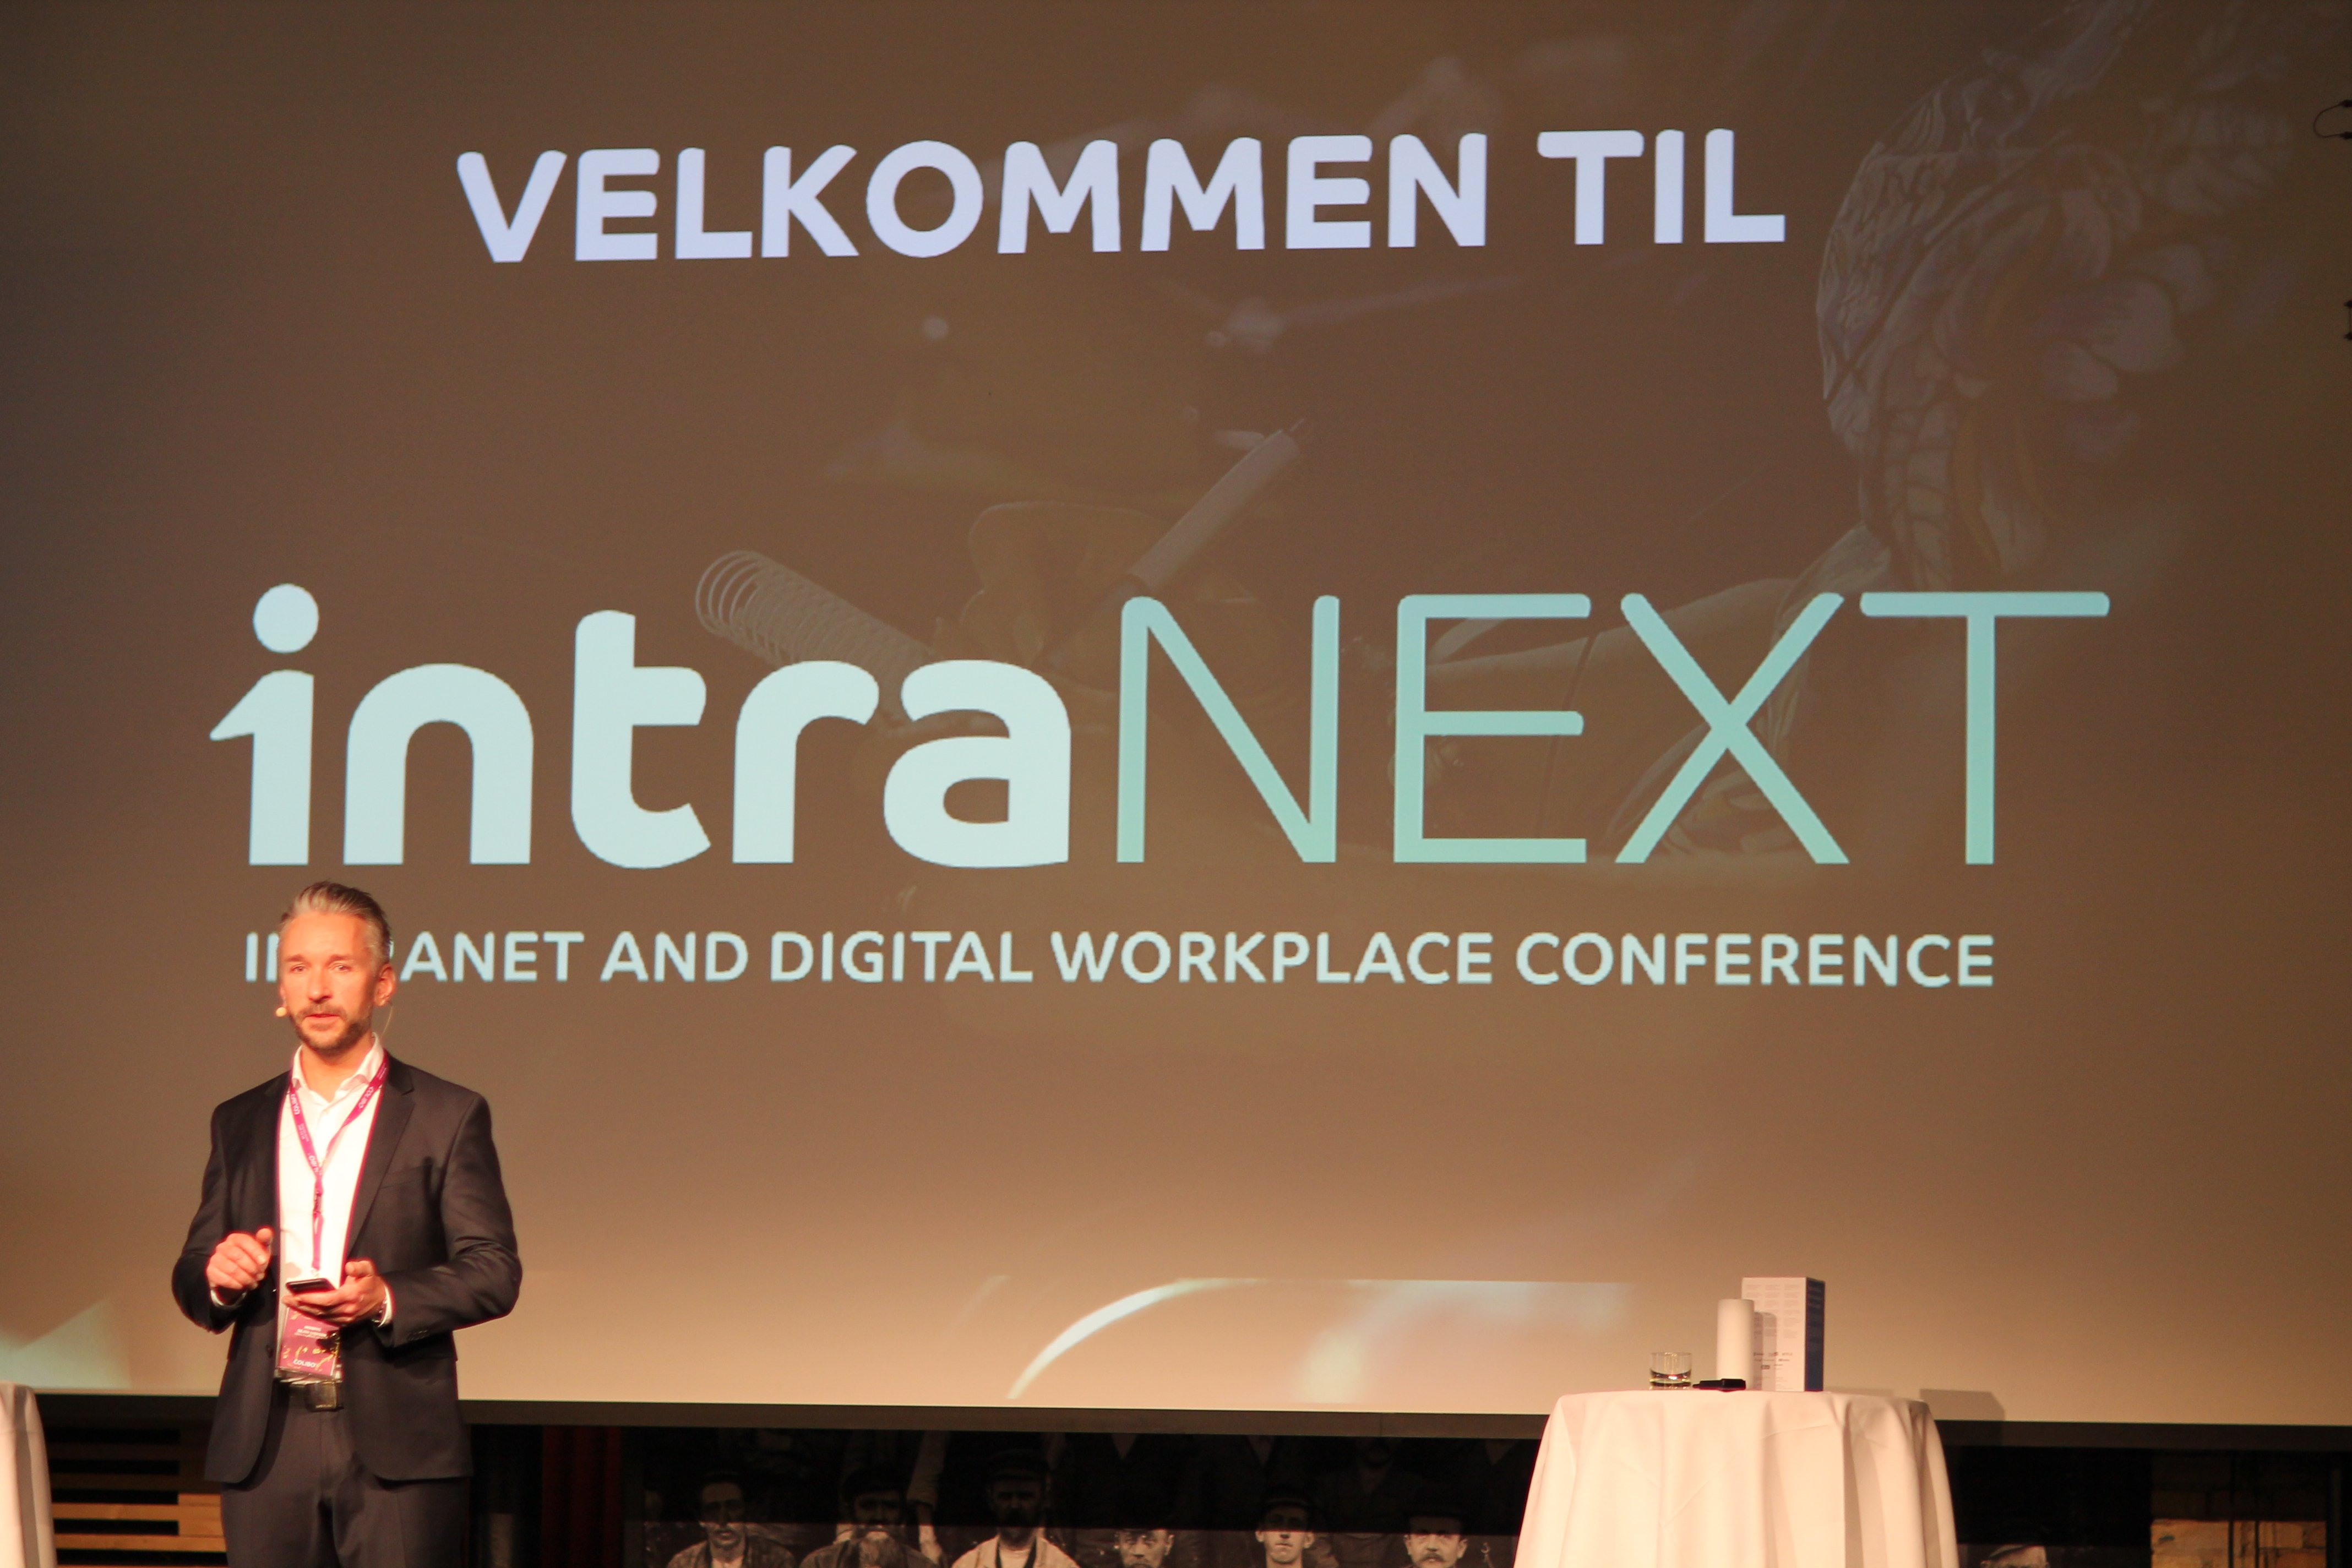 intraNEXT 2018 - A talk about intranet and the digital workplace